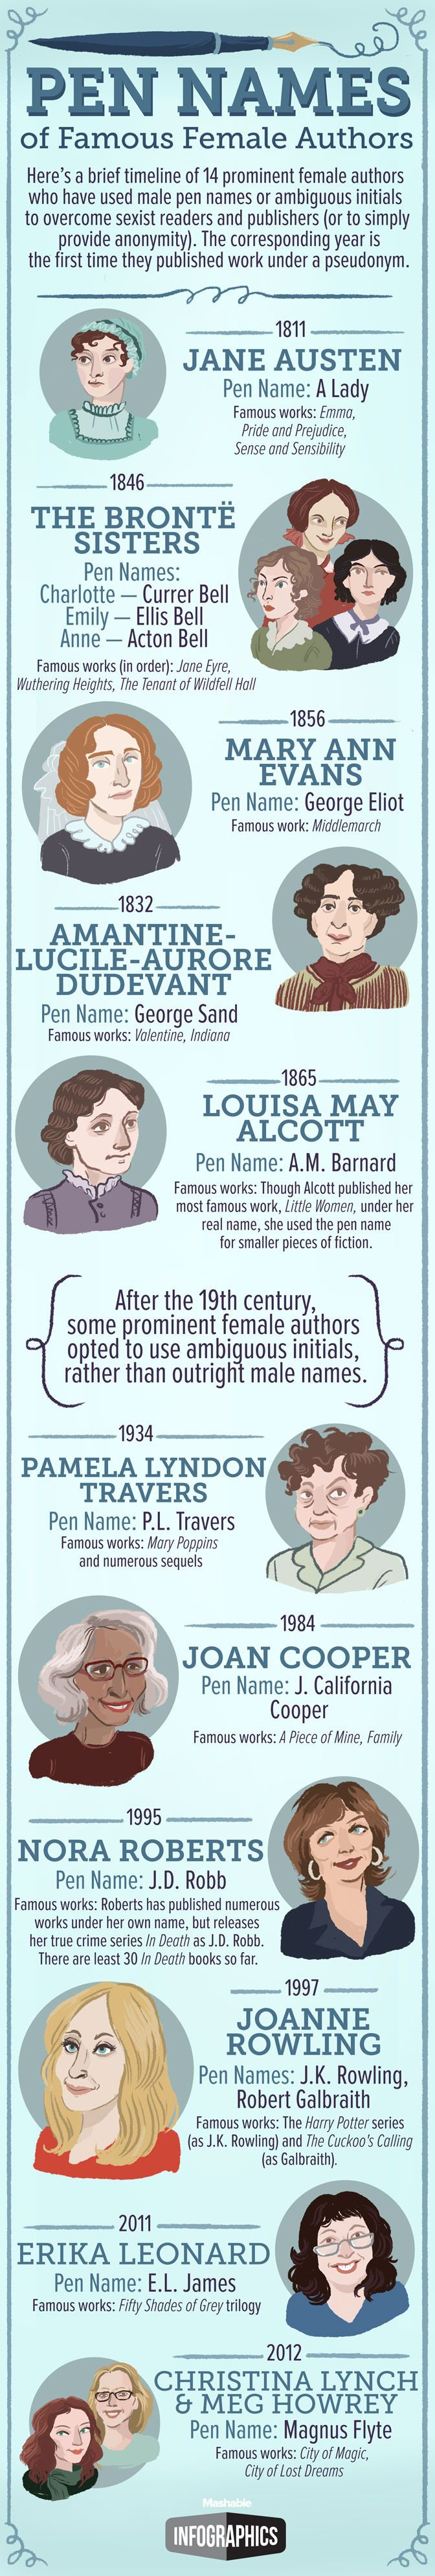 A brief history of female authors with male pen names.